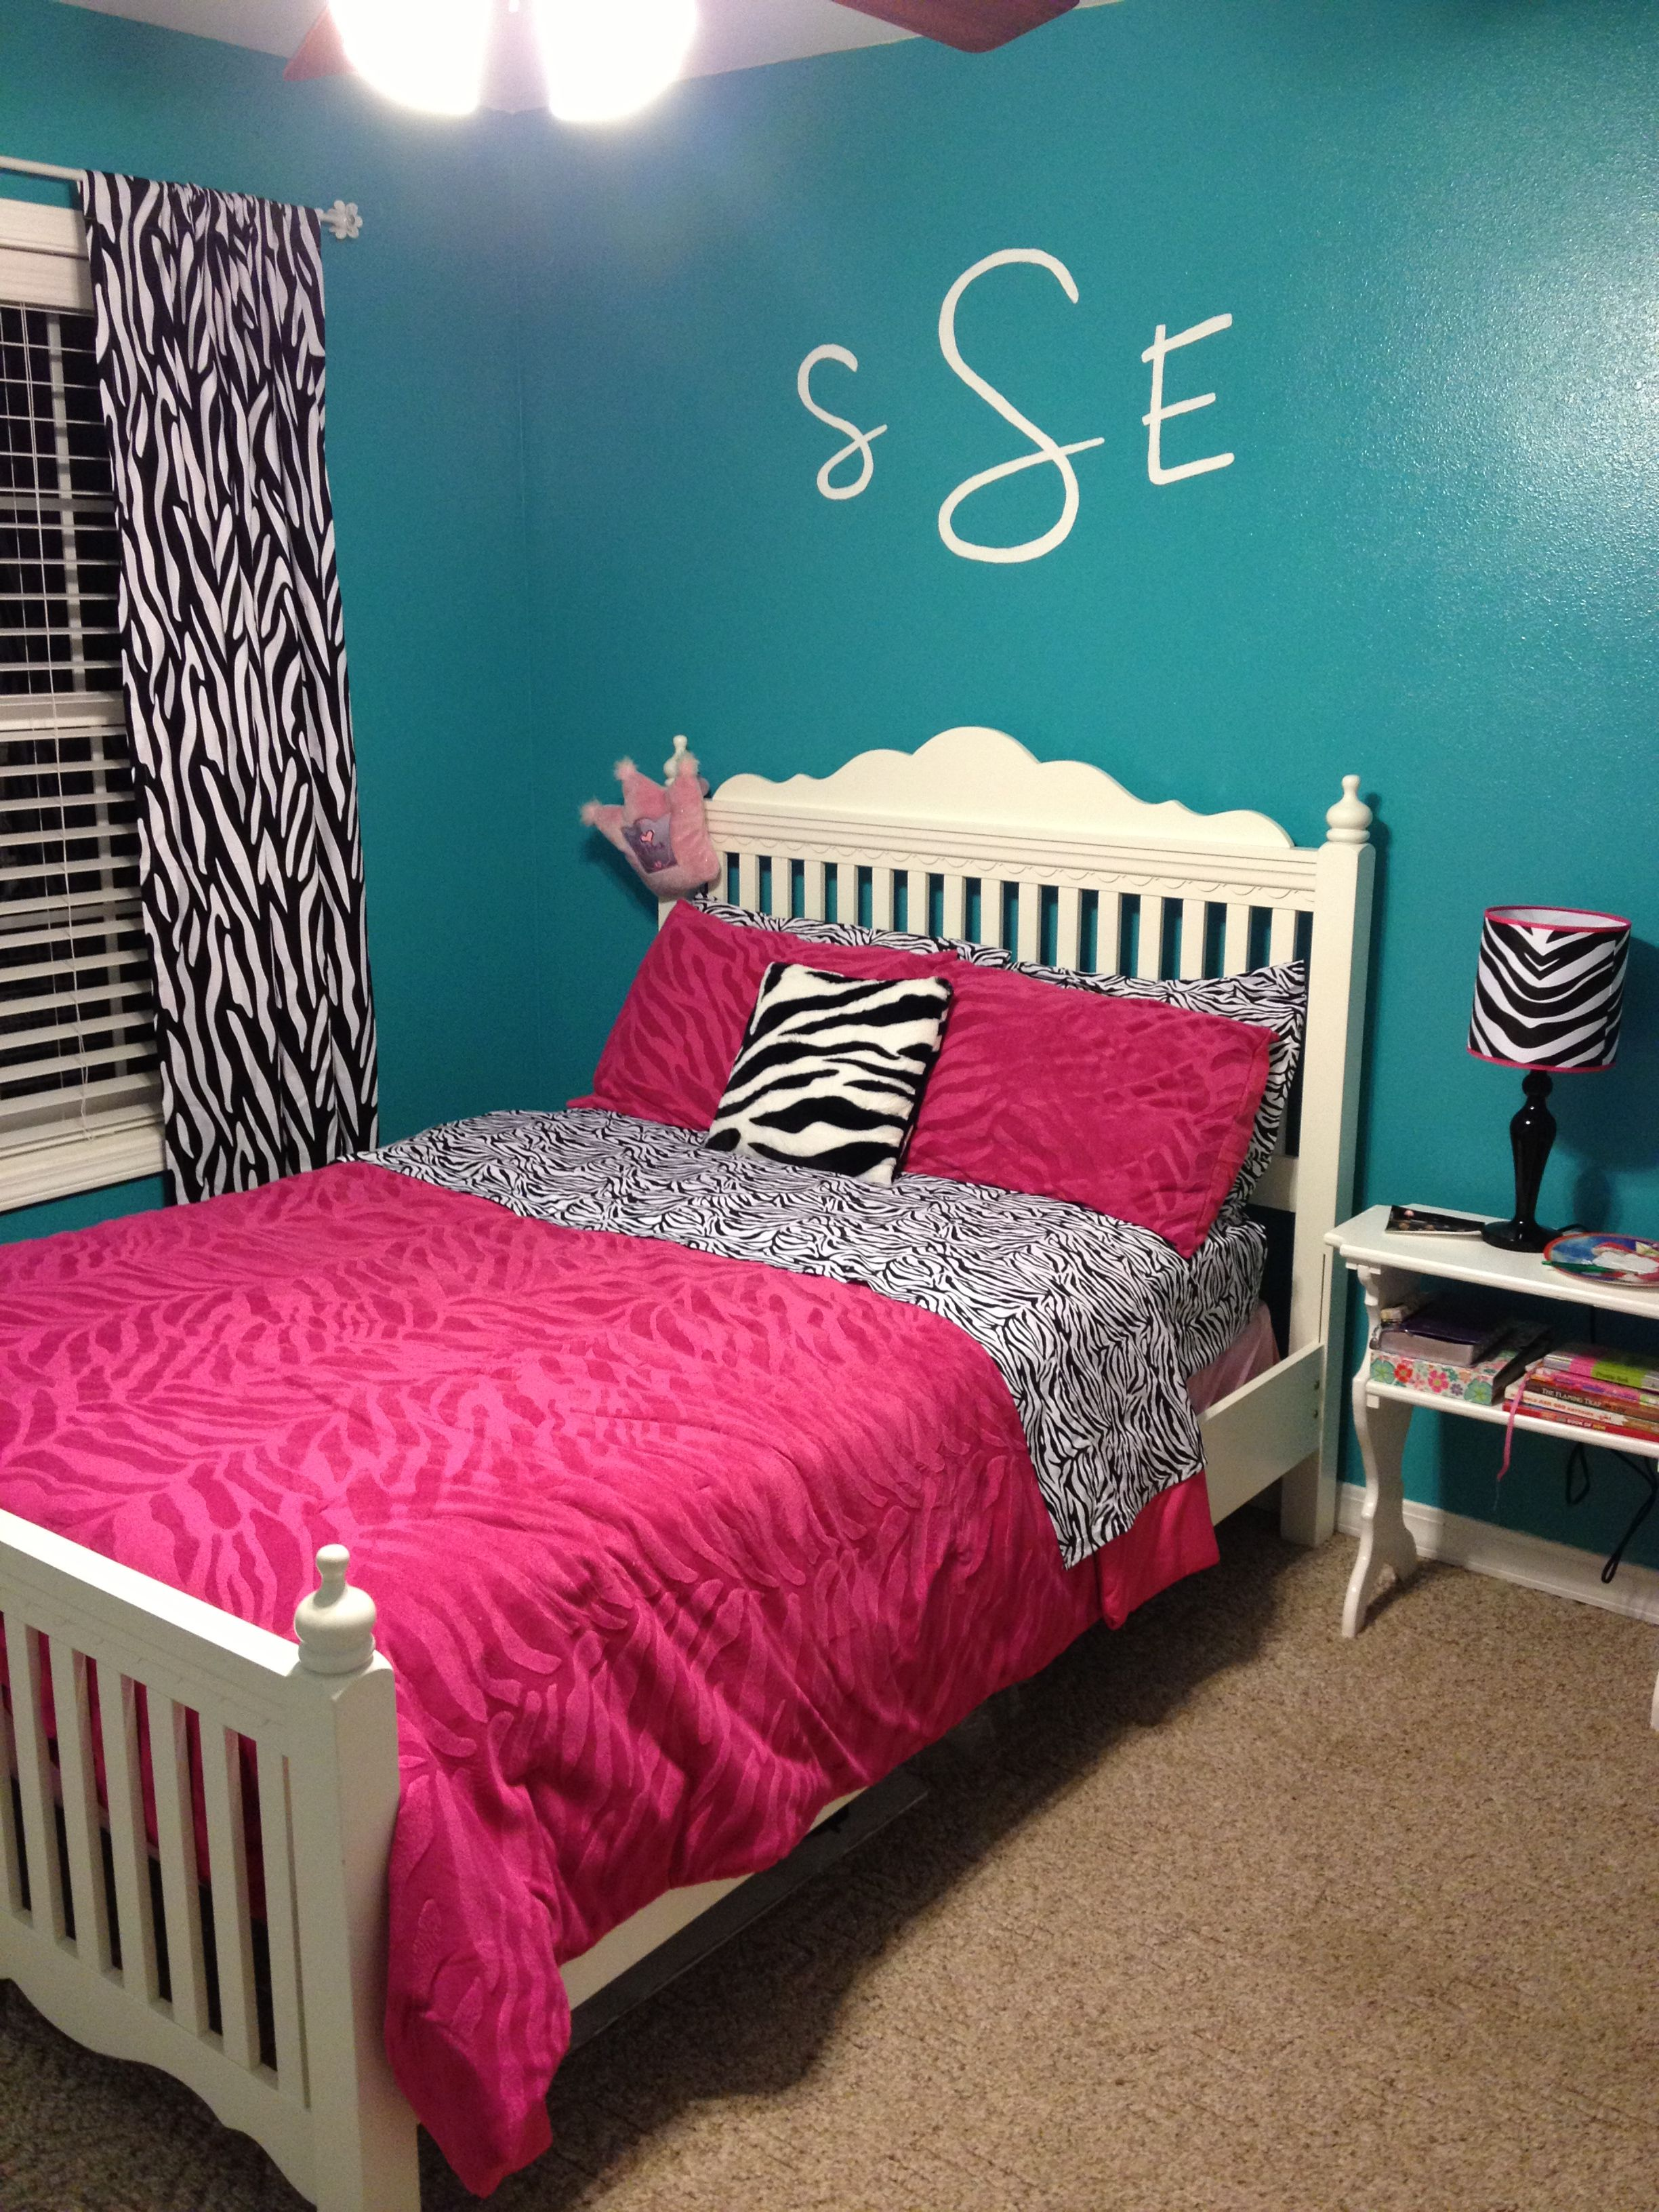 Savannah bedroom makeover Pink zebra striped and teal My